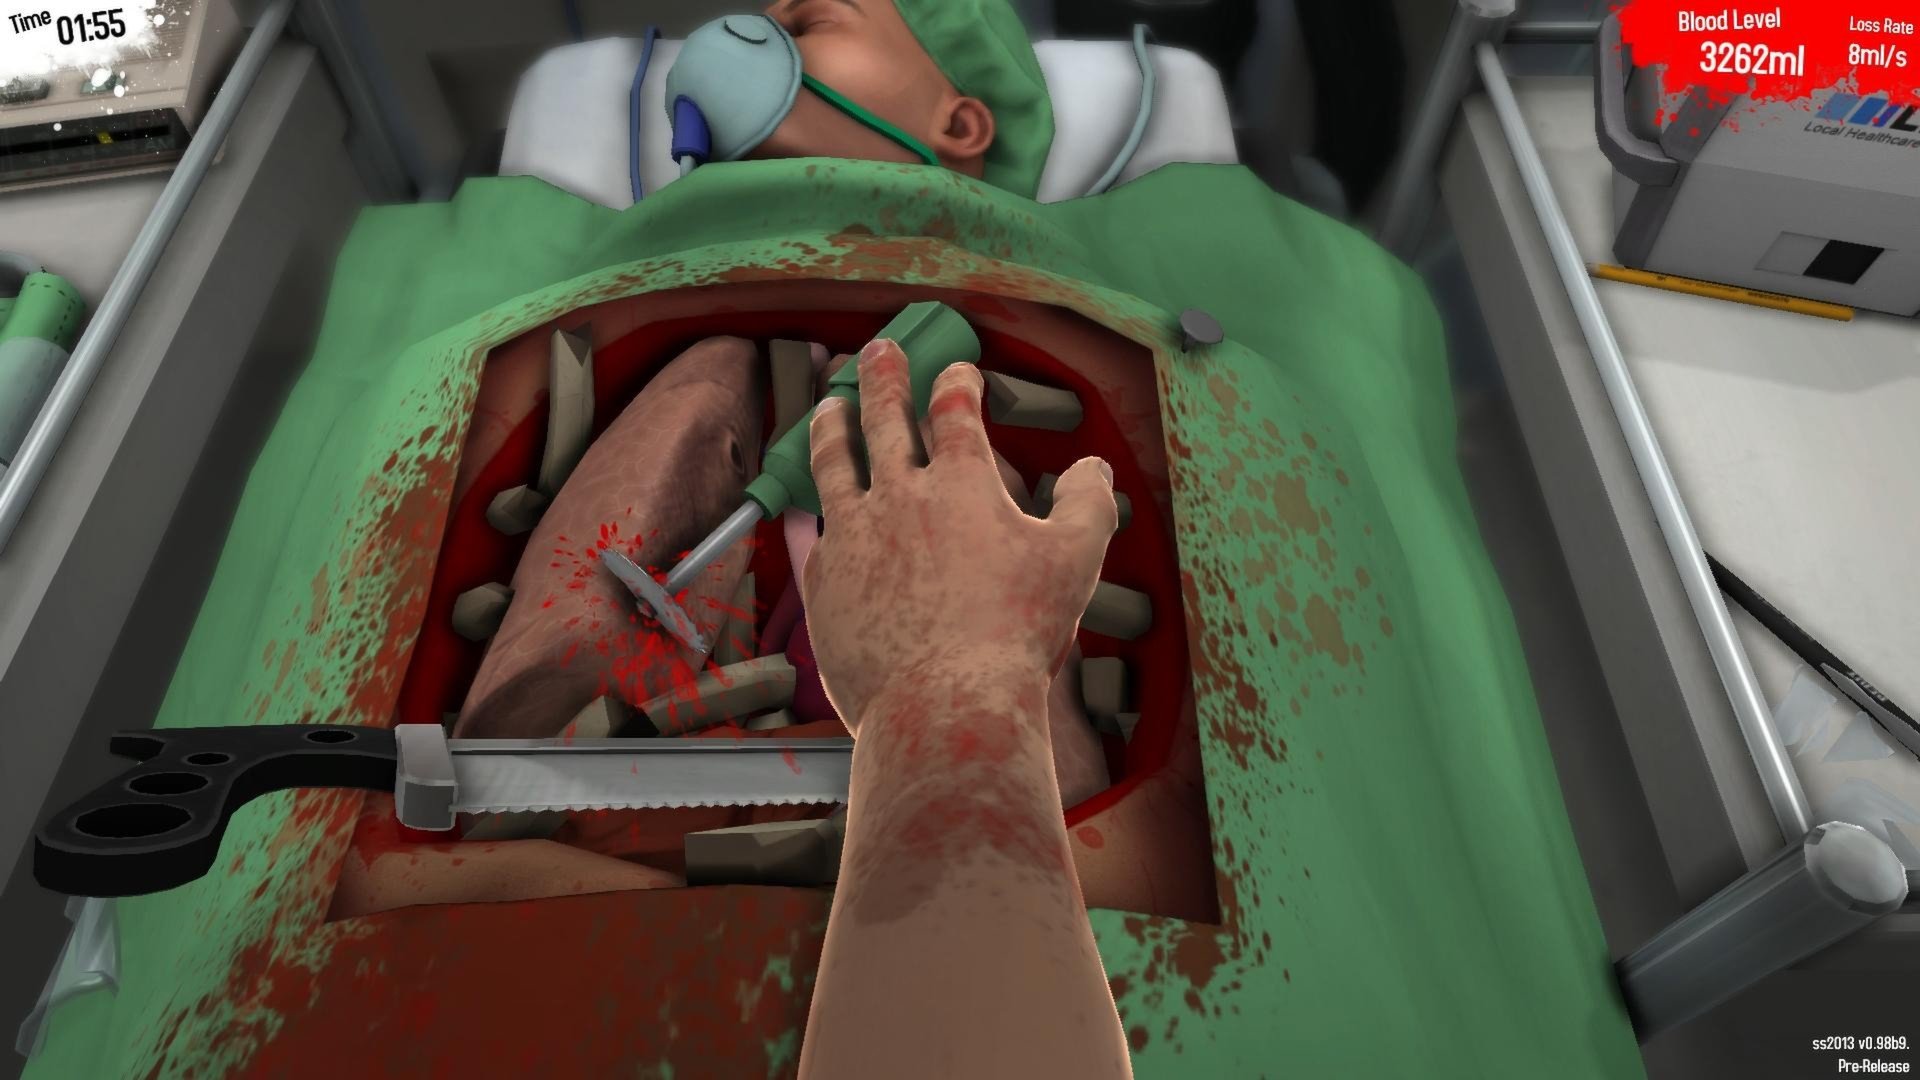 Surgeon Simulator 2013 screenshot 1